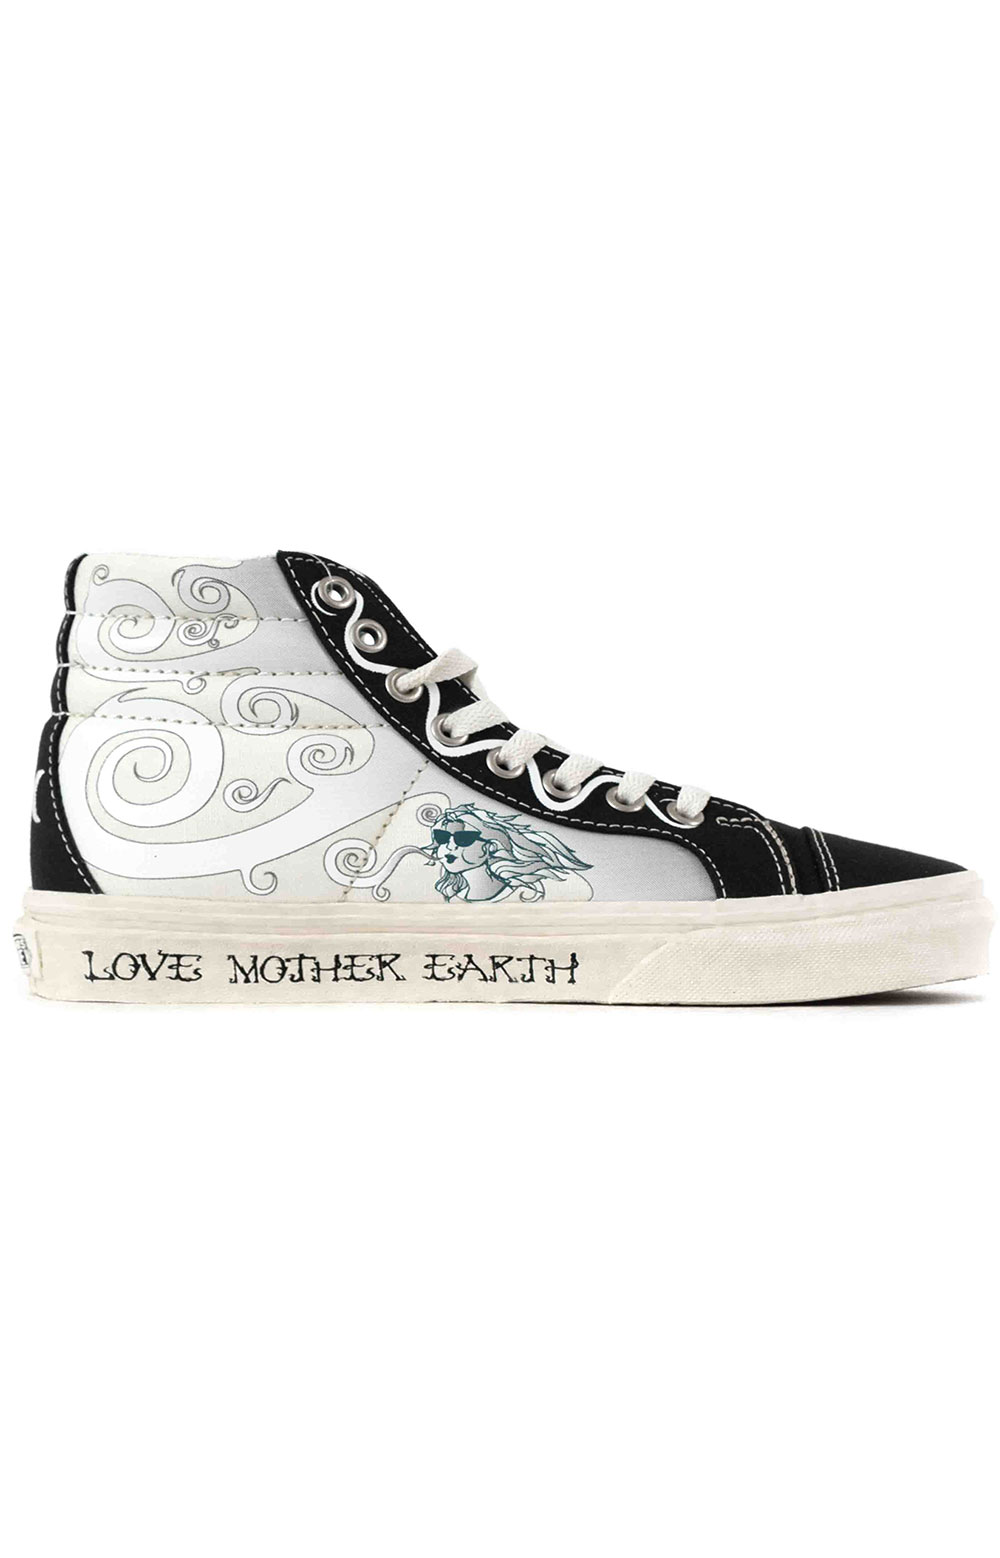 (JFIWZ2) Mother Earth Style 238 Shoes - Elements Marshmallow  10